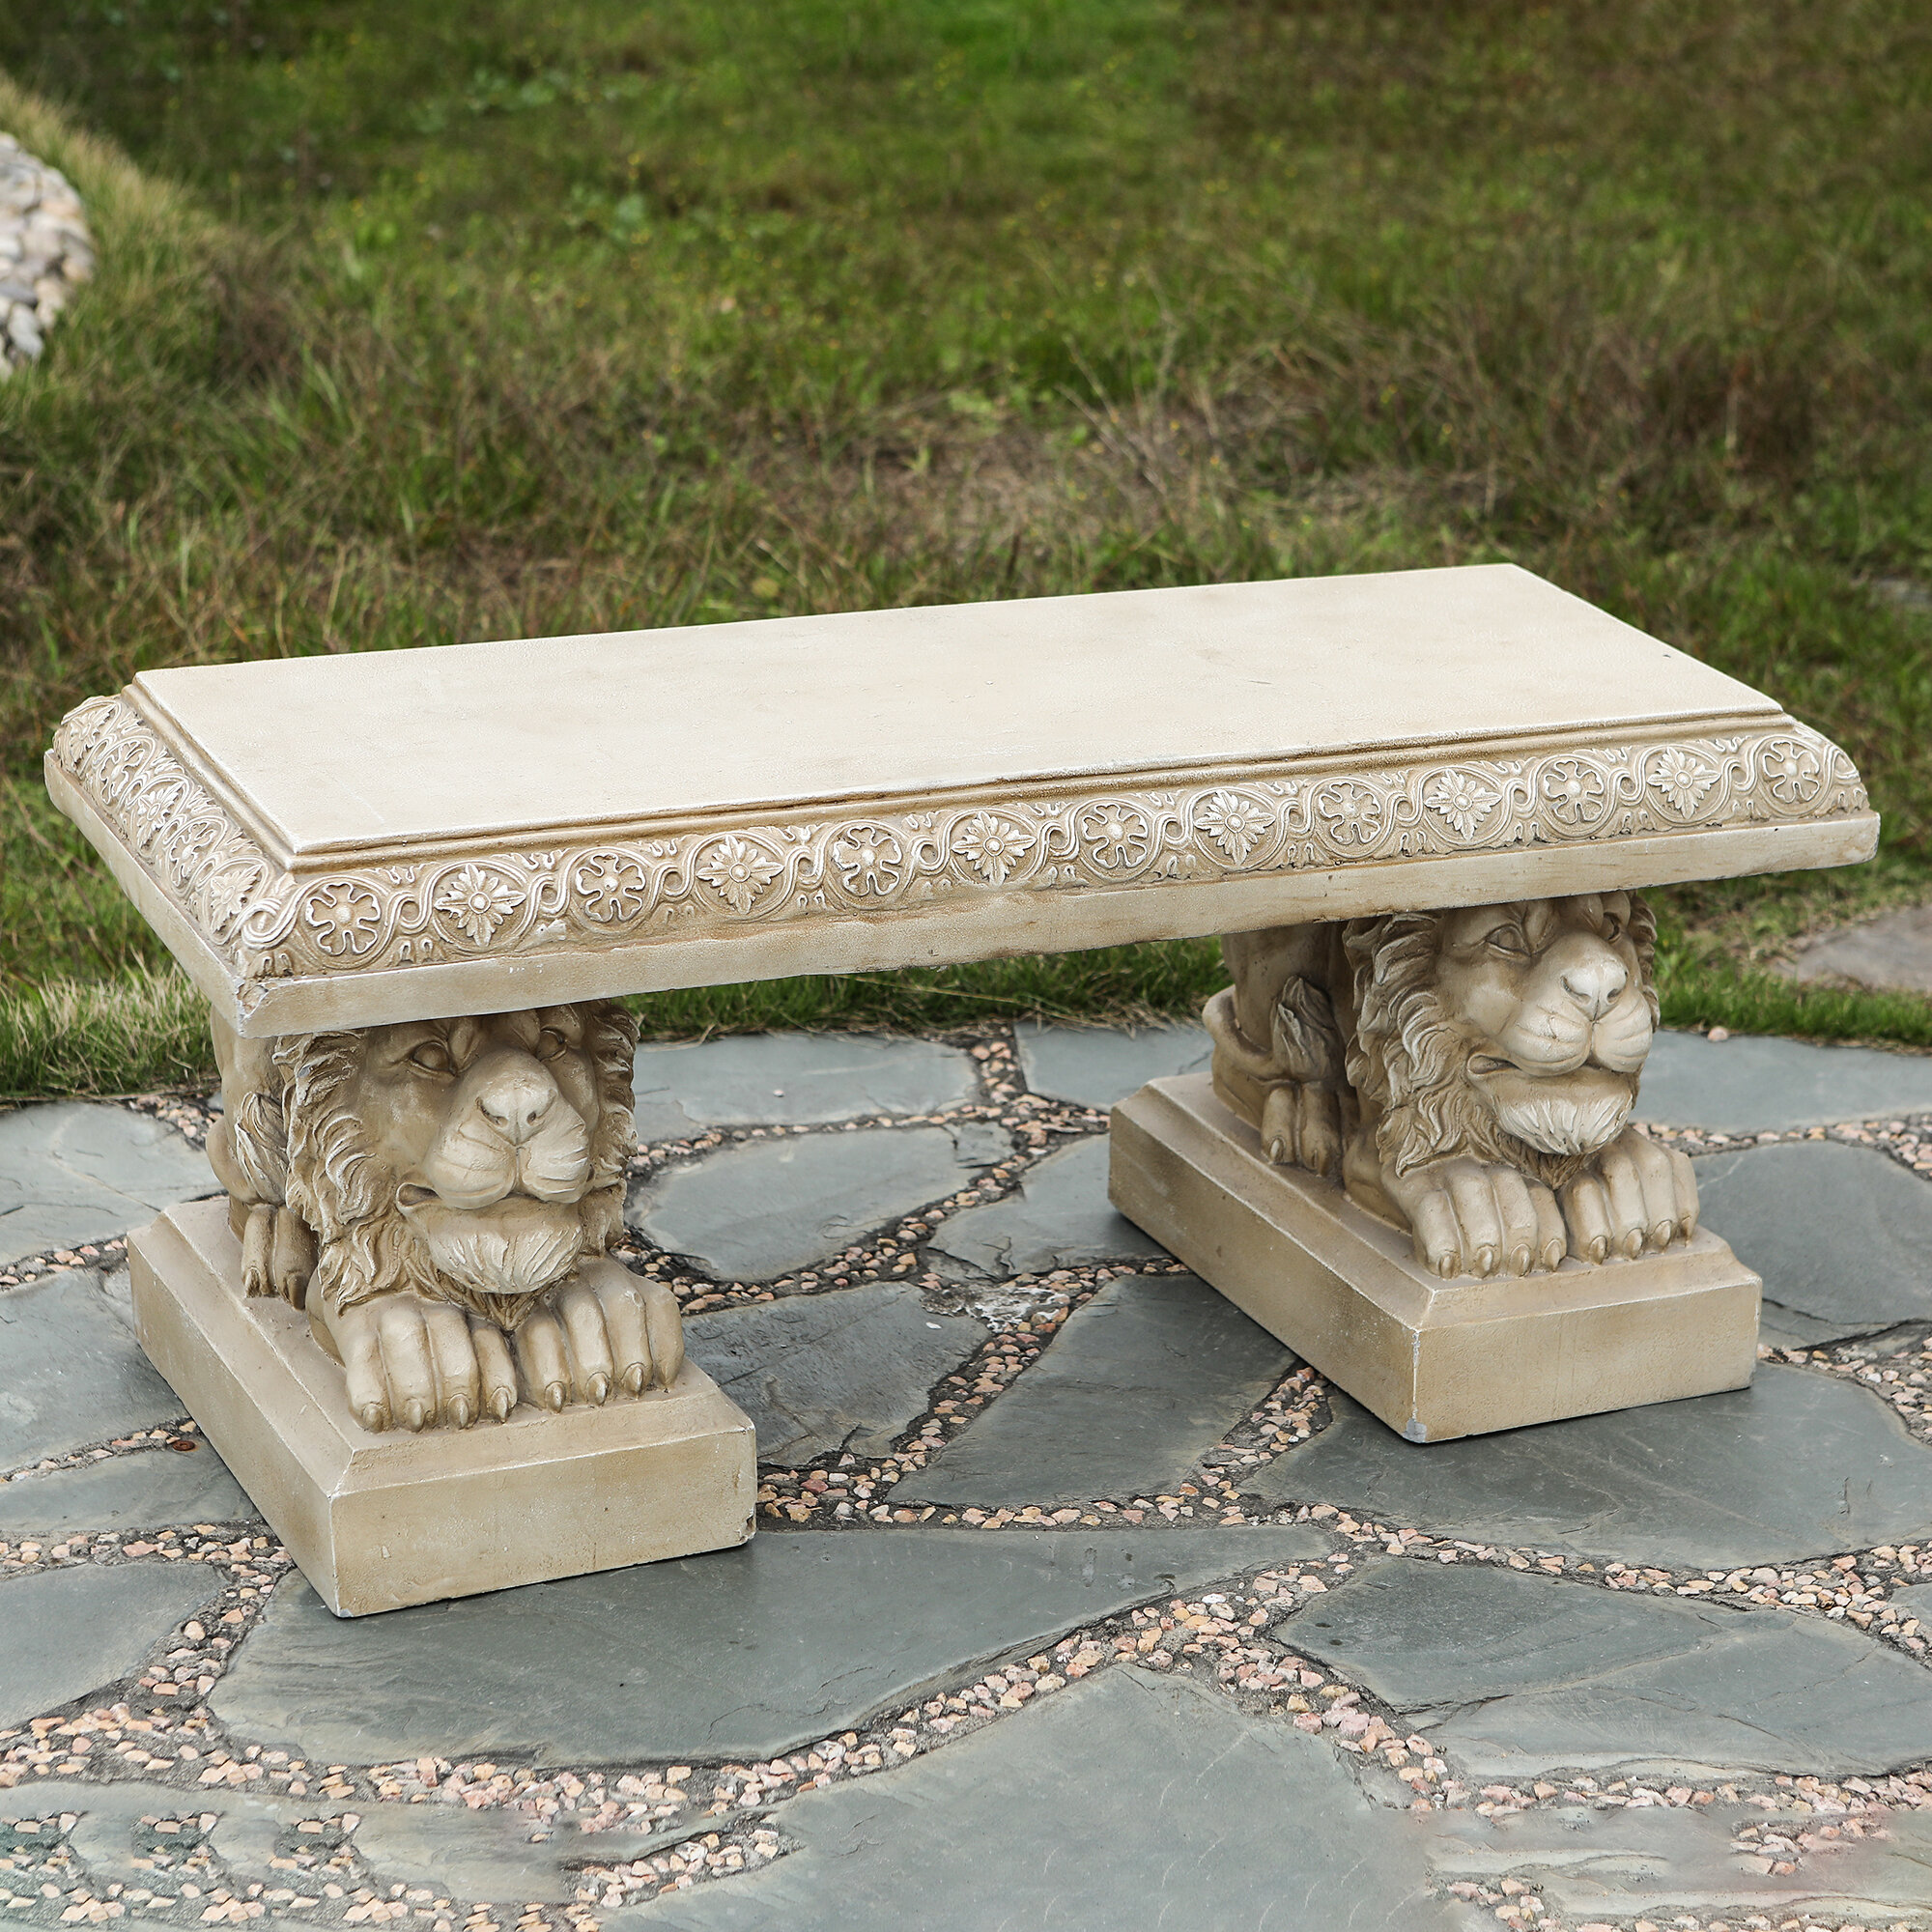 Astonishing Raguel Lion Stone Concrete Garden Bench Inzonedesignstudio Interior Chair Design Inzonedesignstudiocom